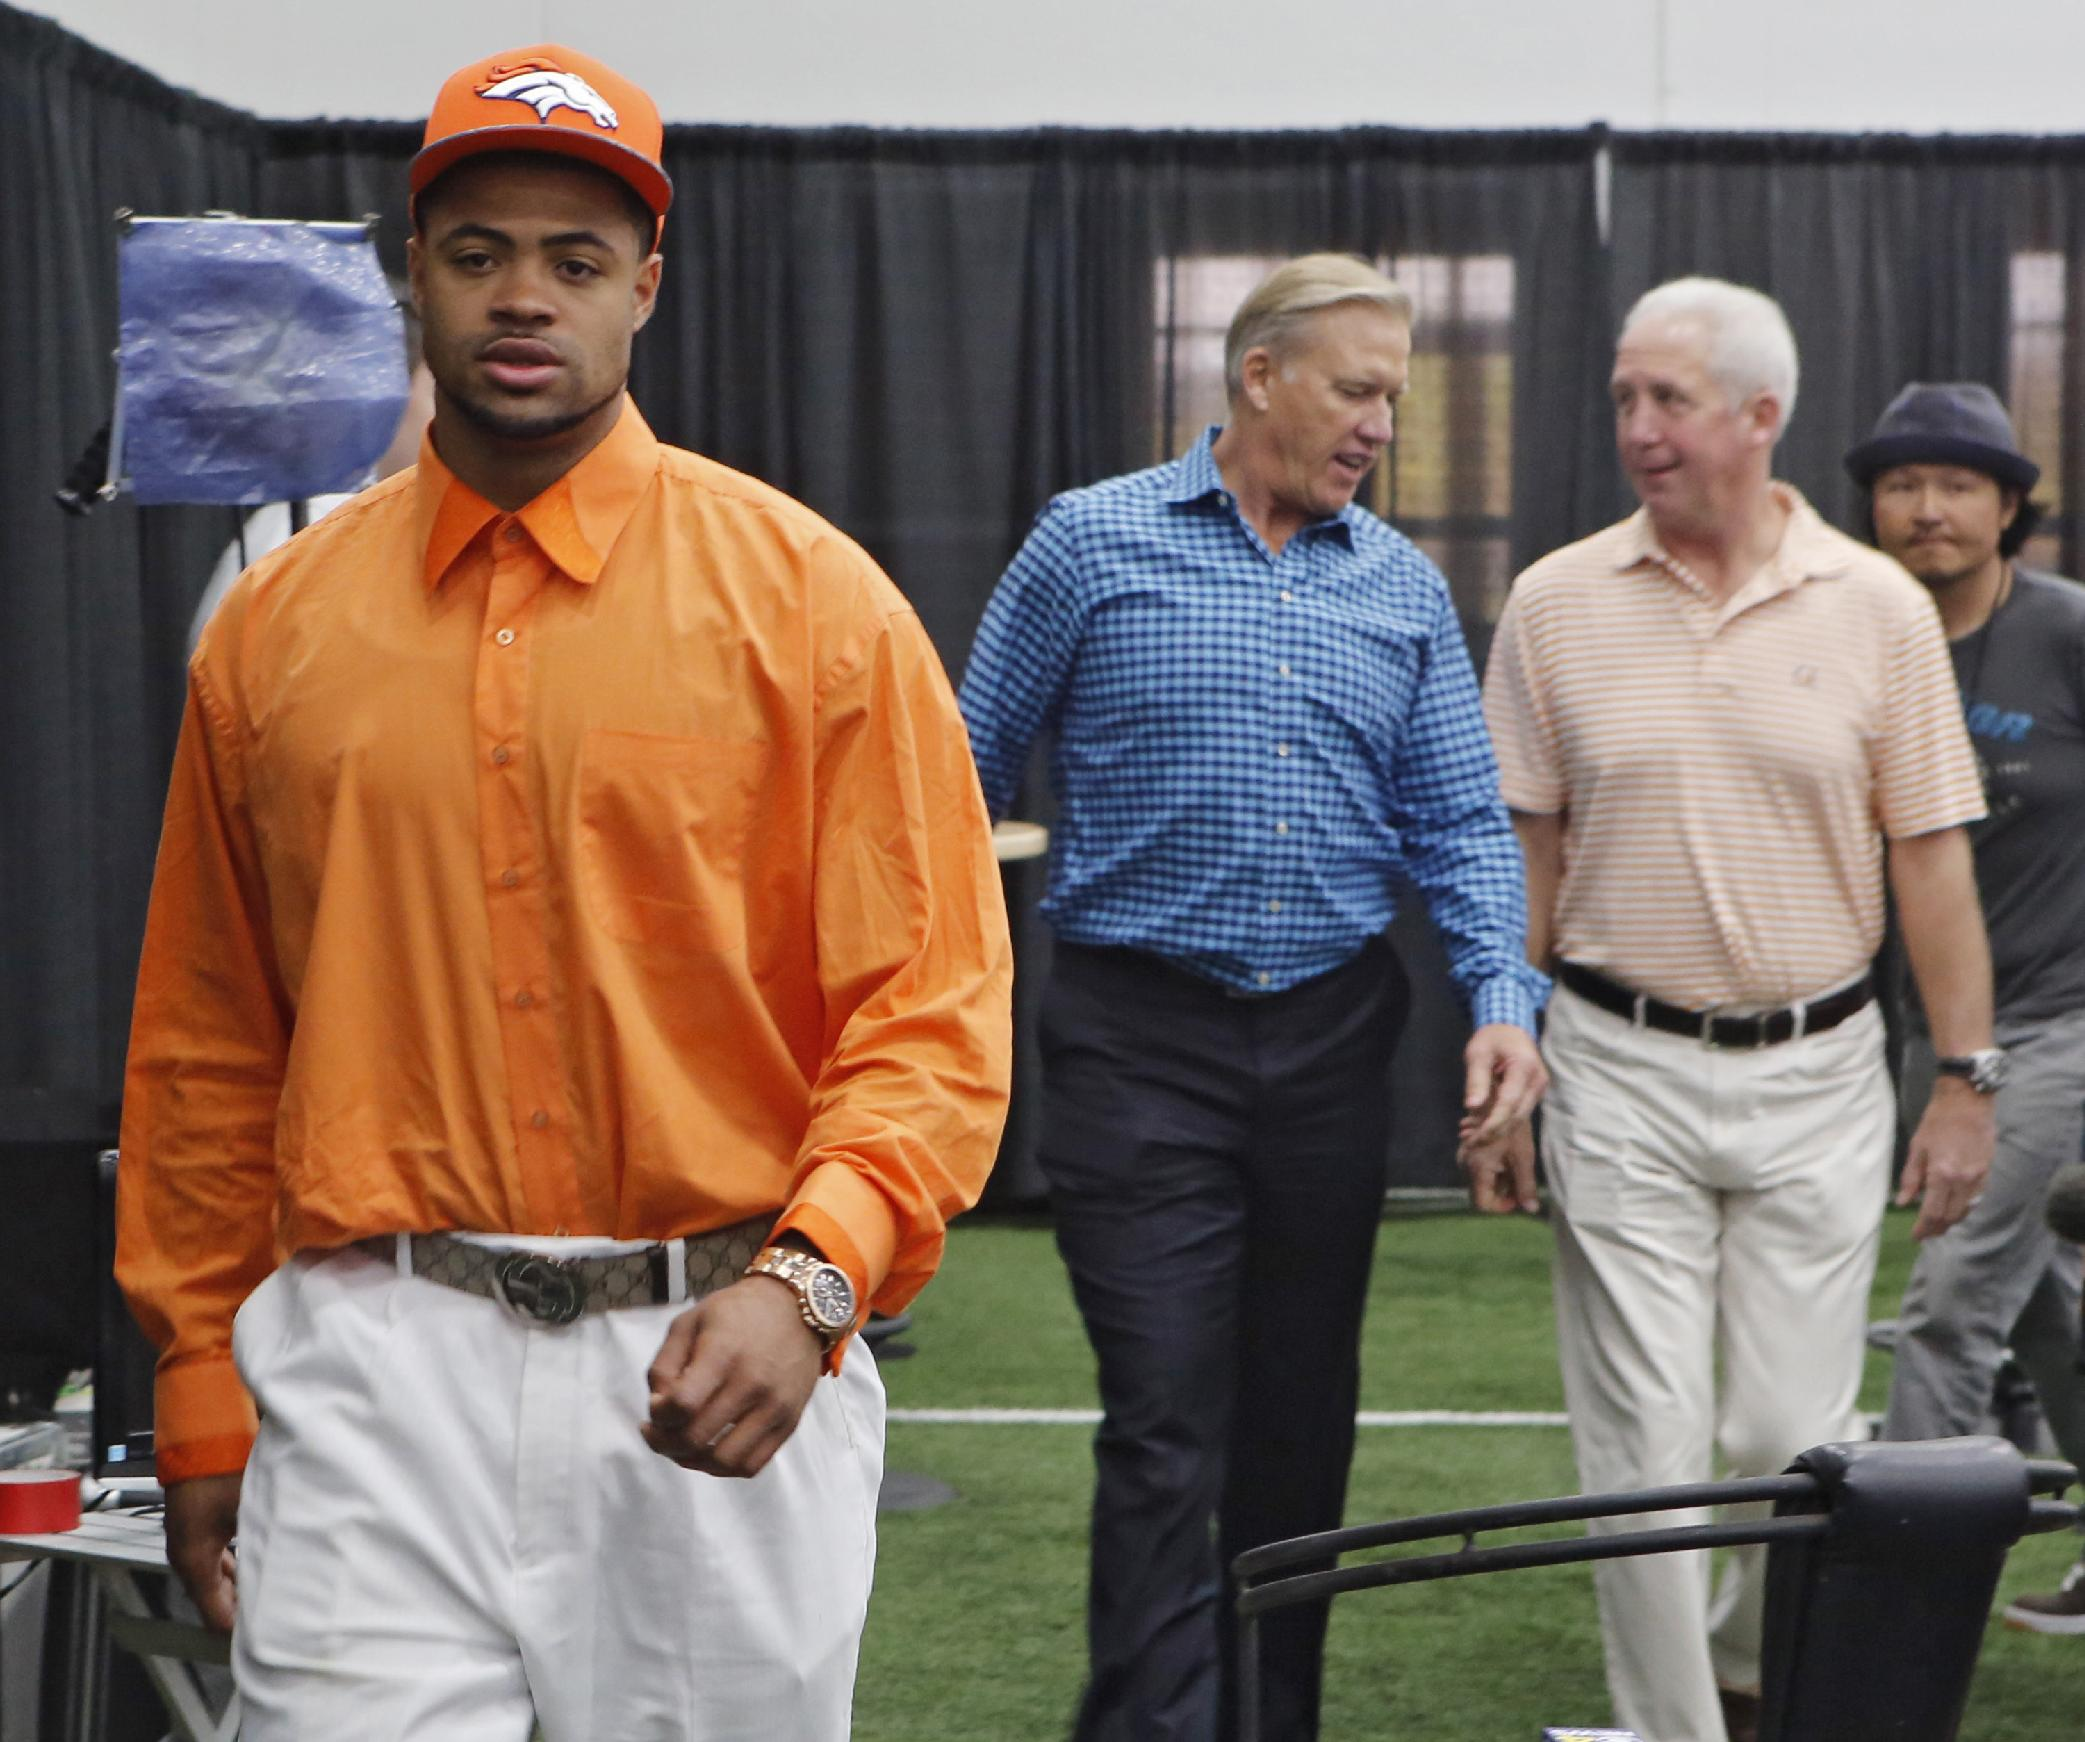 Denver Broncos second round draft pick Indiana wide receiver Cody Latimer, left,  leads the way to a news conference at the NFL football teams headquarters in Englewood, Colo., on Saturday, May 10, 2014.  He is followed by Broncos vice president John Elway, center, and head coach John Fox